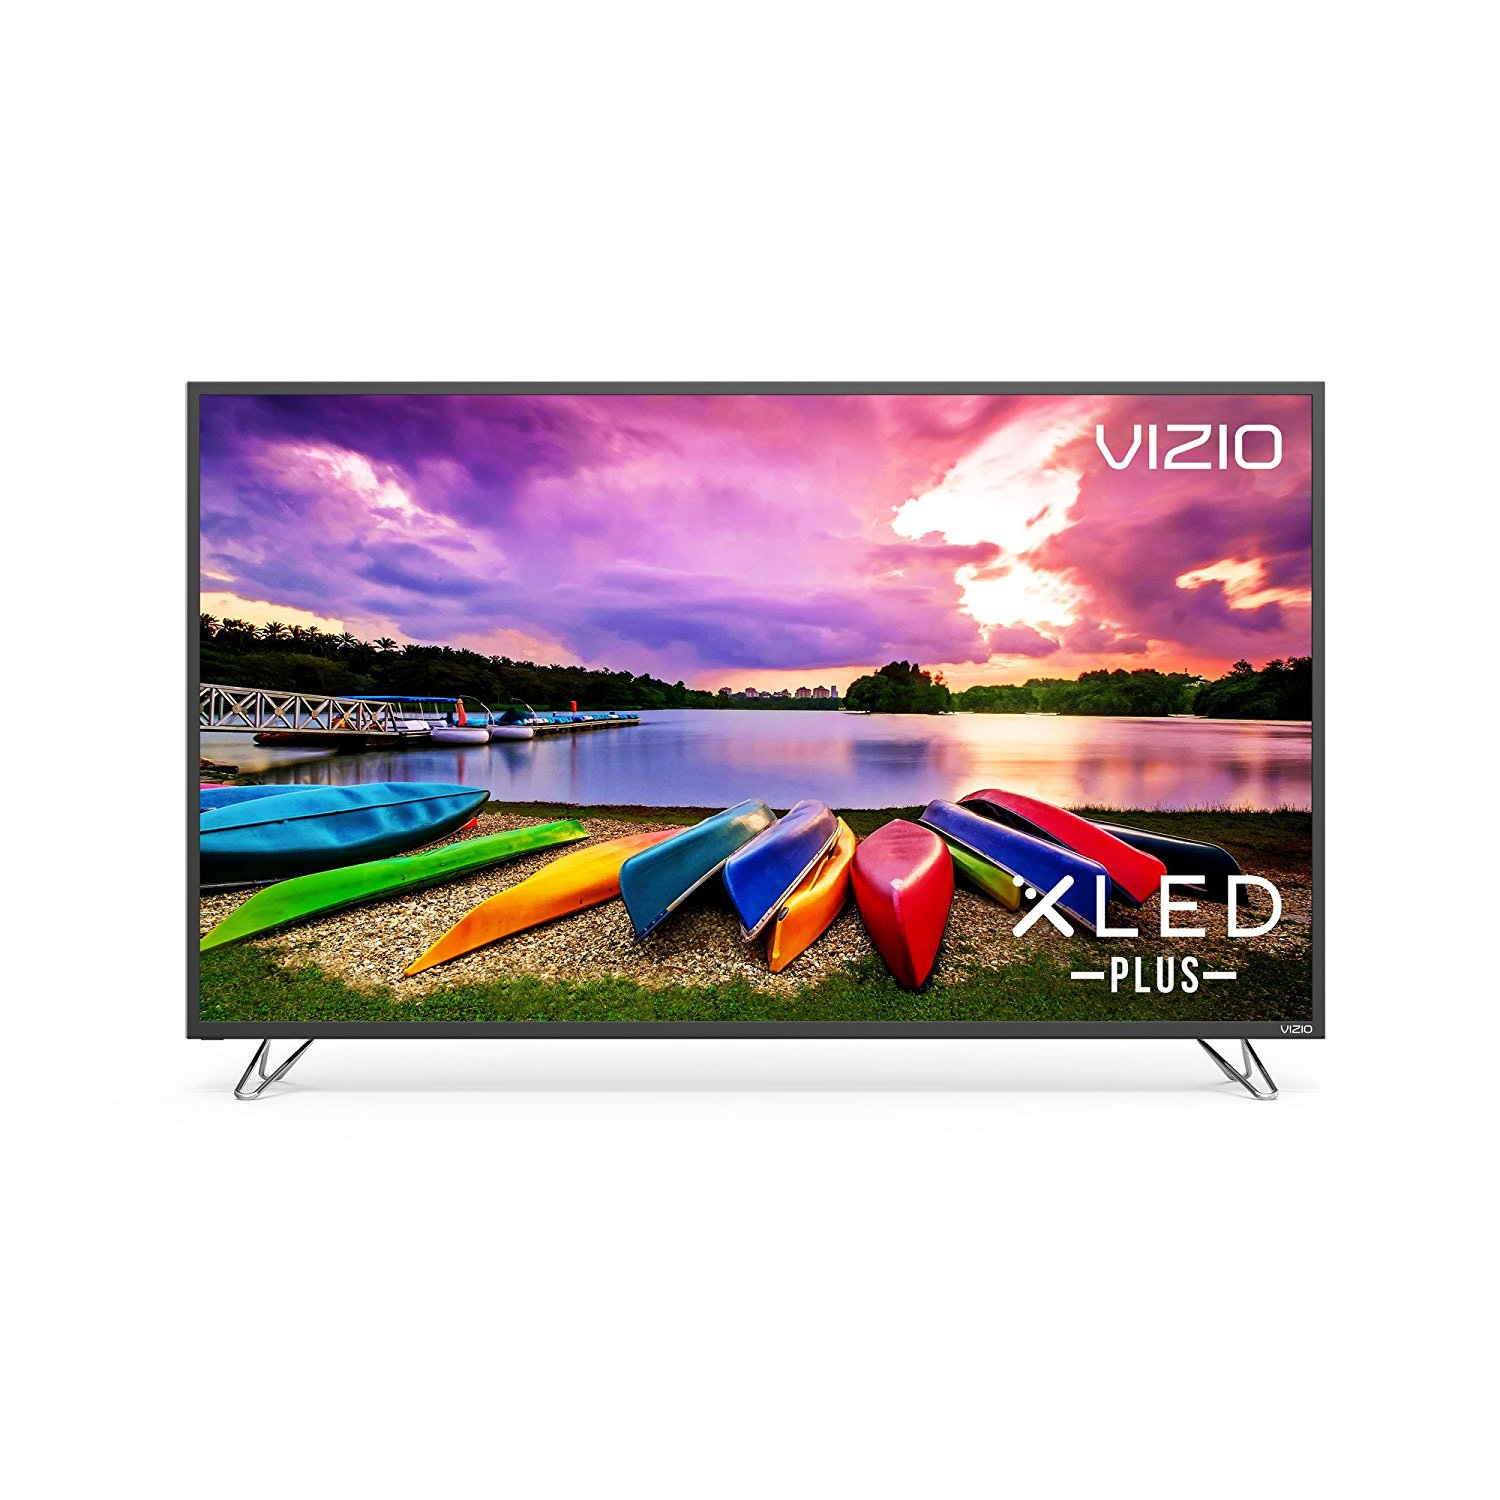 An image of VIZIO M-Series M50-E1 50-Inch HDR Flat Screen 4K XLED 120Hz TV with VIZIO Clear Action 360